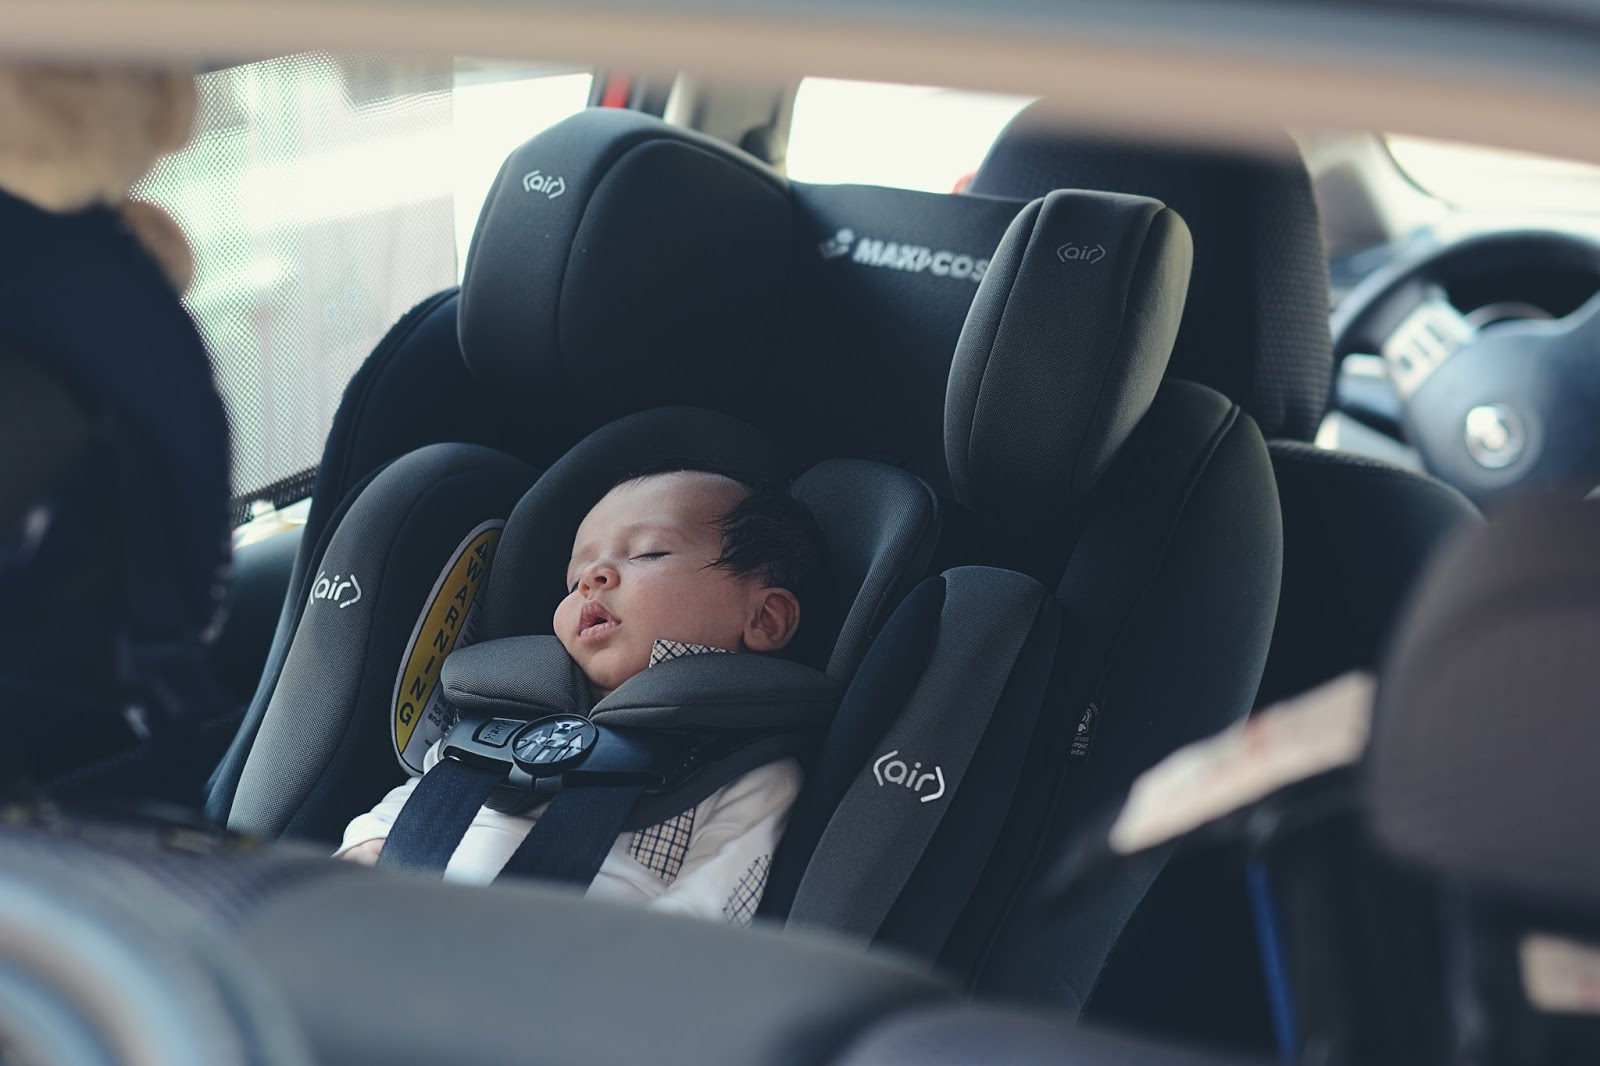 Maxi Cosi Pria 70 Review Lets Talk About Car Seats This Topic I Believe Is Most Important For All Moms We Want The Best Safest Seat Out There